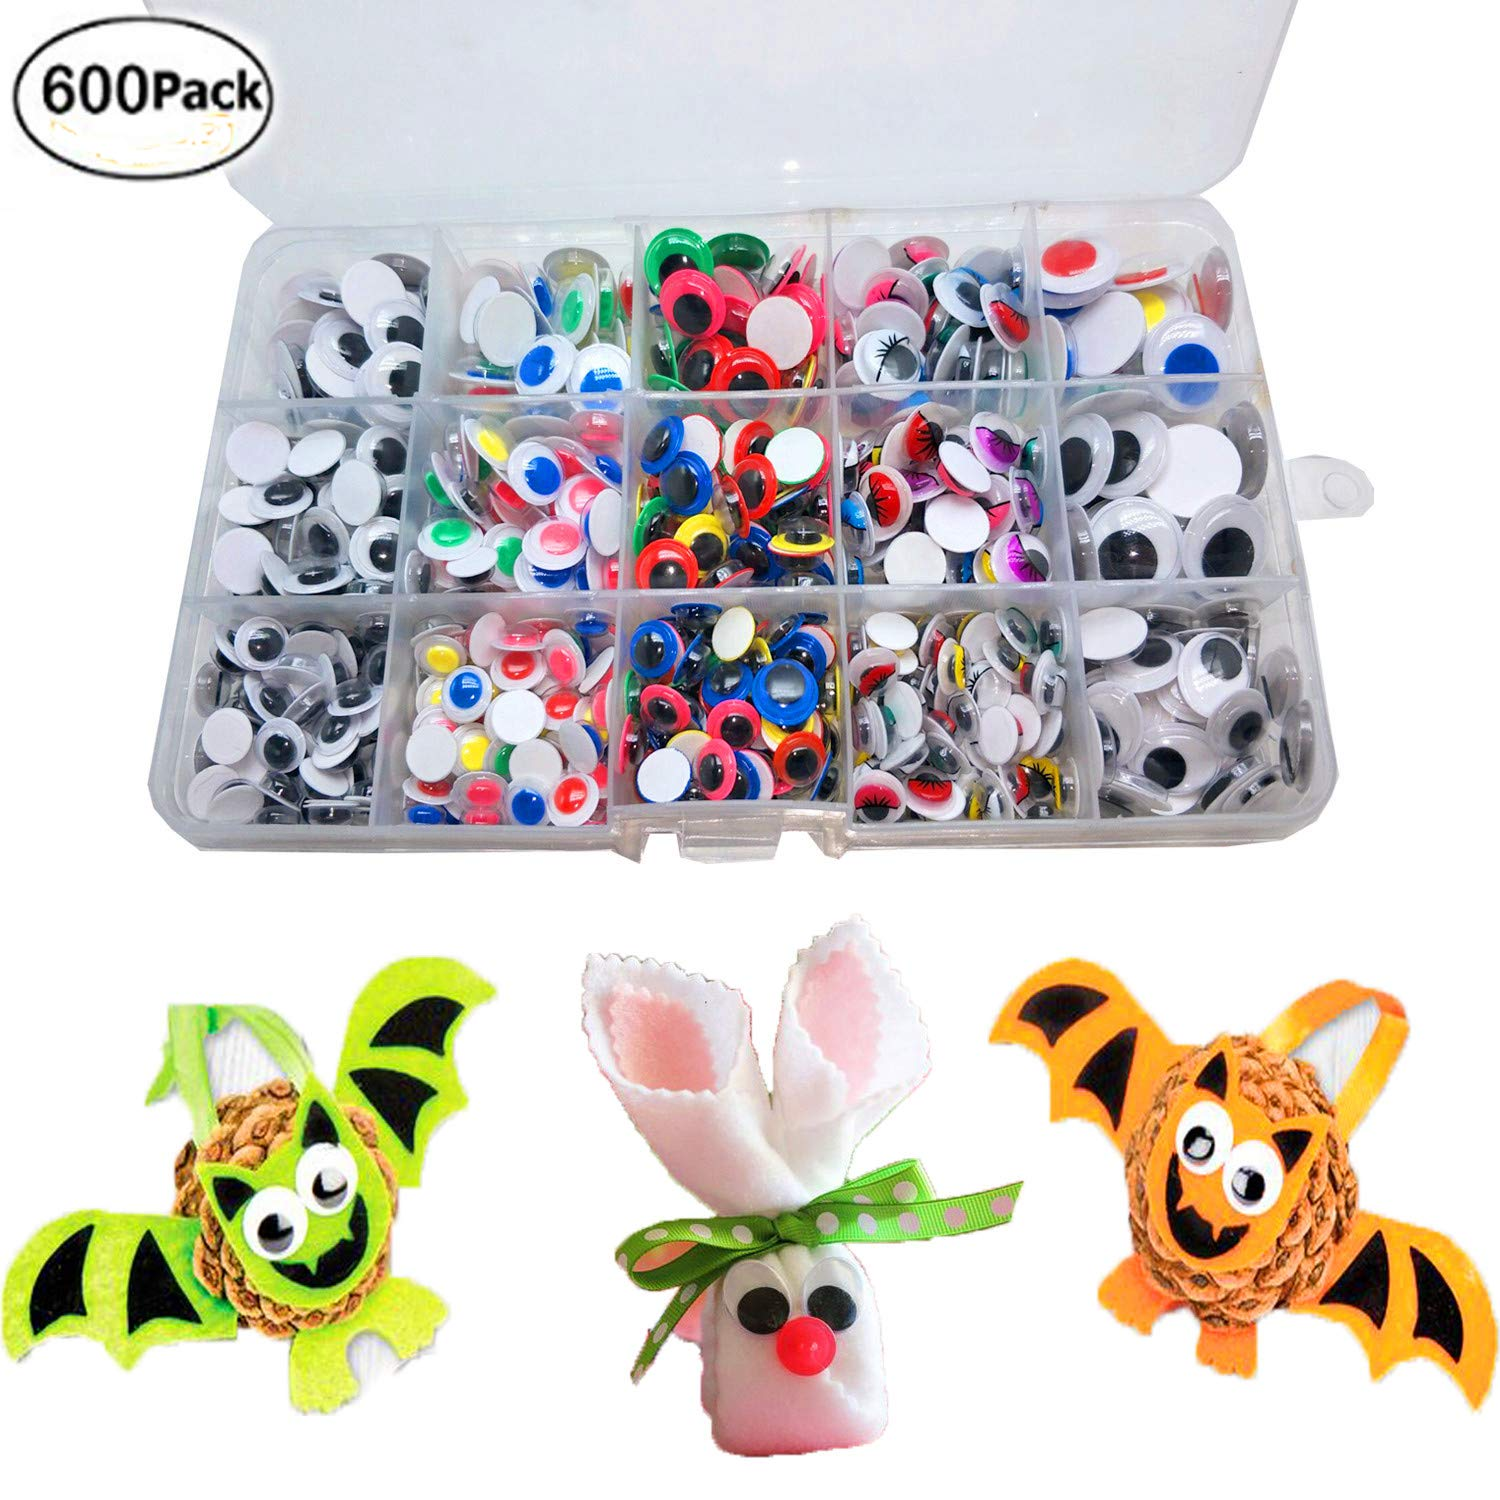 600Pcs Wiggle Eyes - Googly Eyes with Self-Adhesive for DIY Scrapbooking Craft Supplies/Toy Accessories with Storage Box by BellaBetty (Assorted Sizes, Multicolors) by BellaBetty